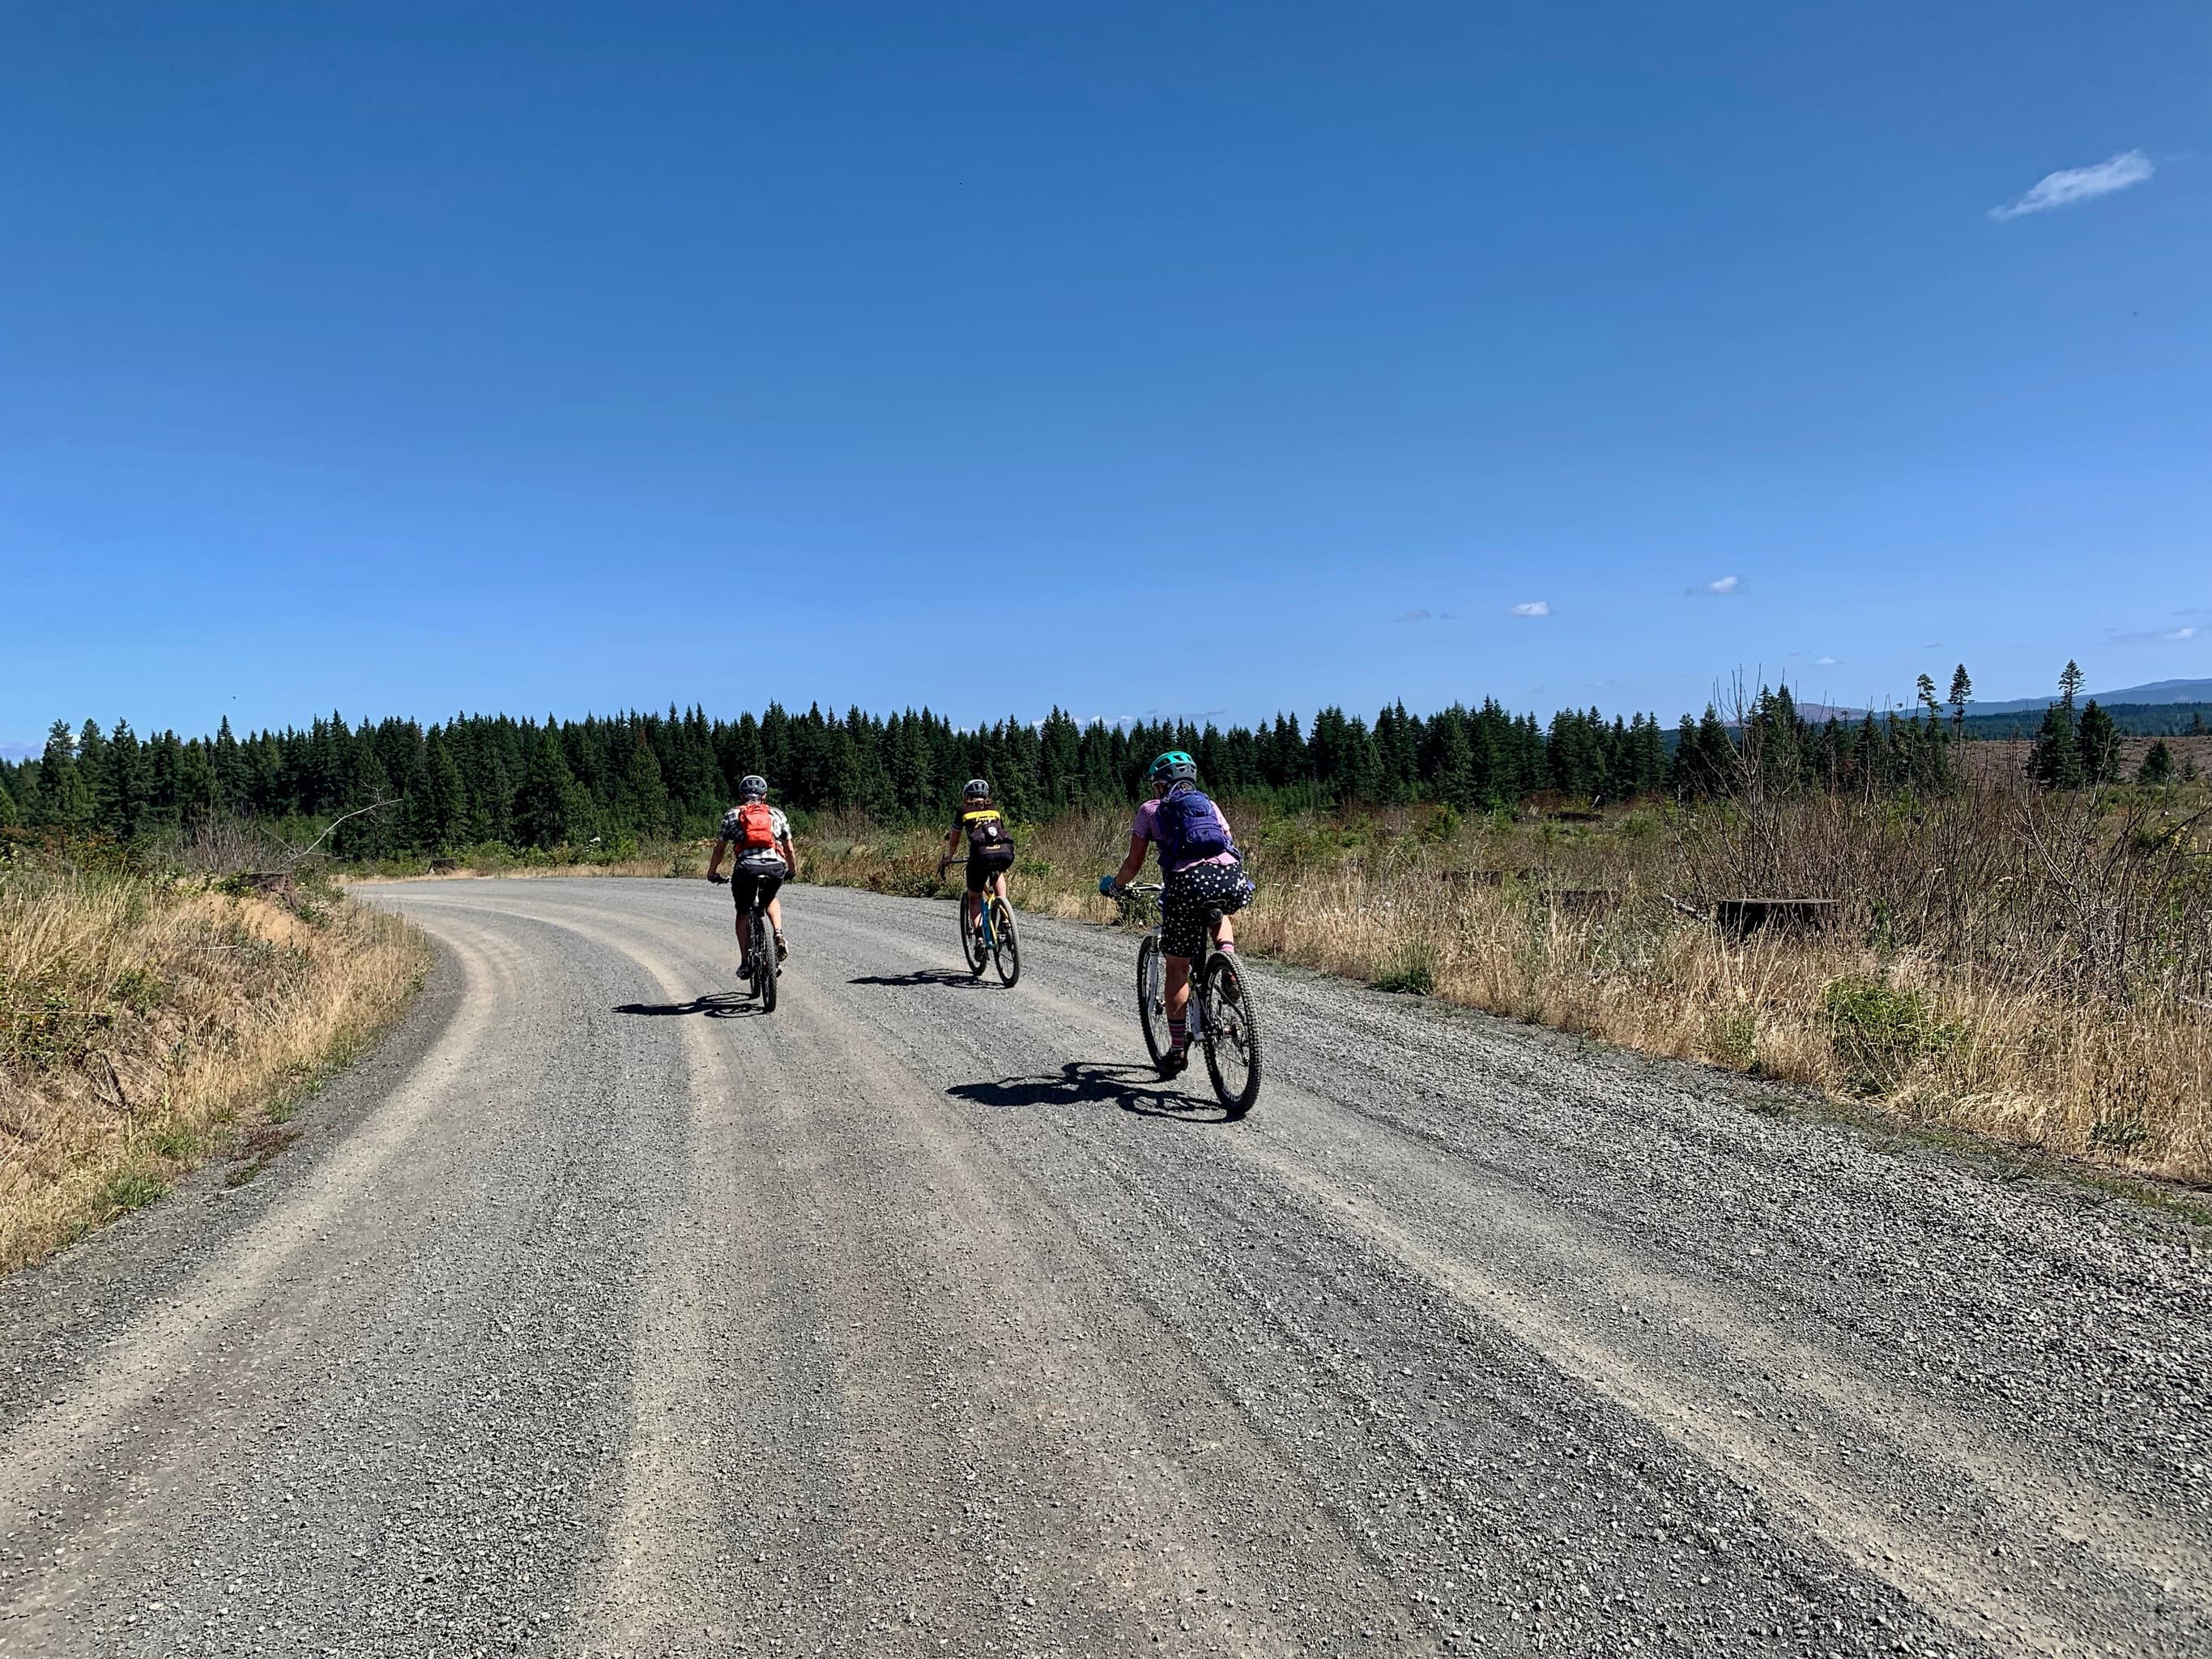 Gravel bike riders at the top of the Fisher Hill climb near Lyle, Washington.